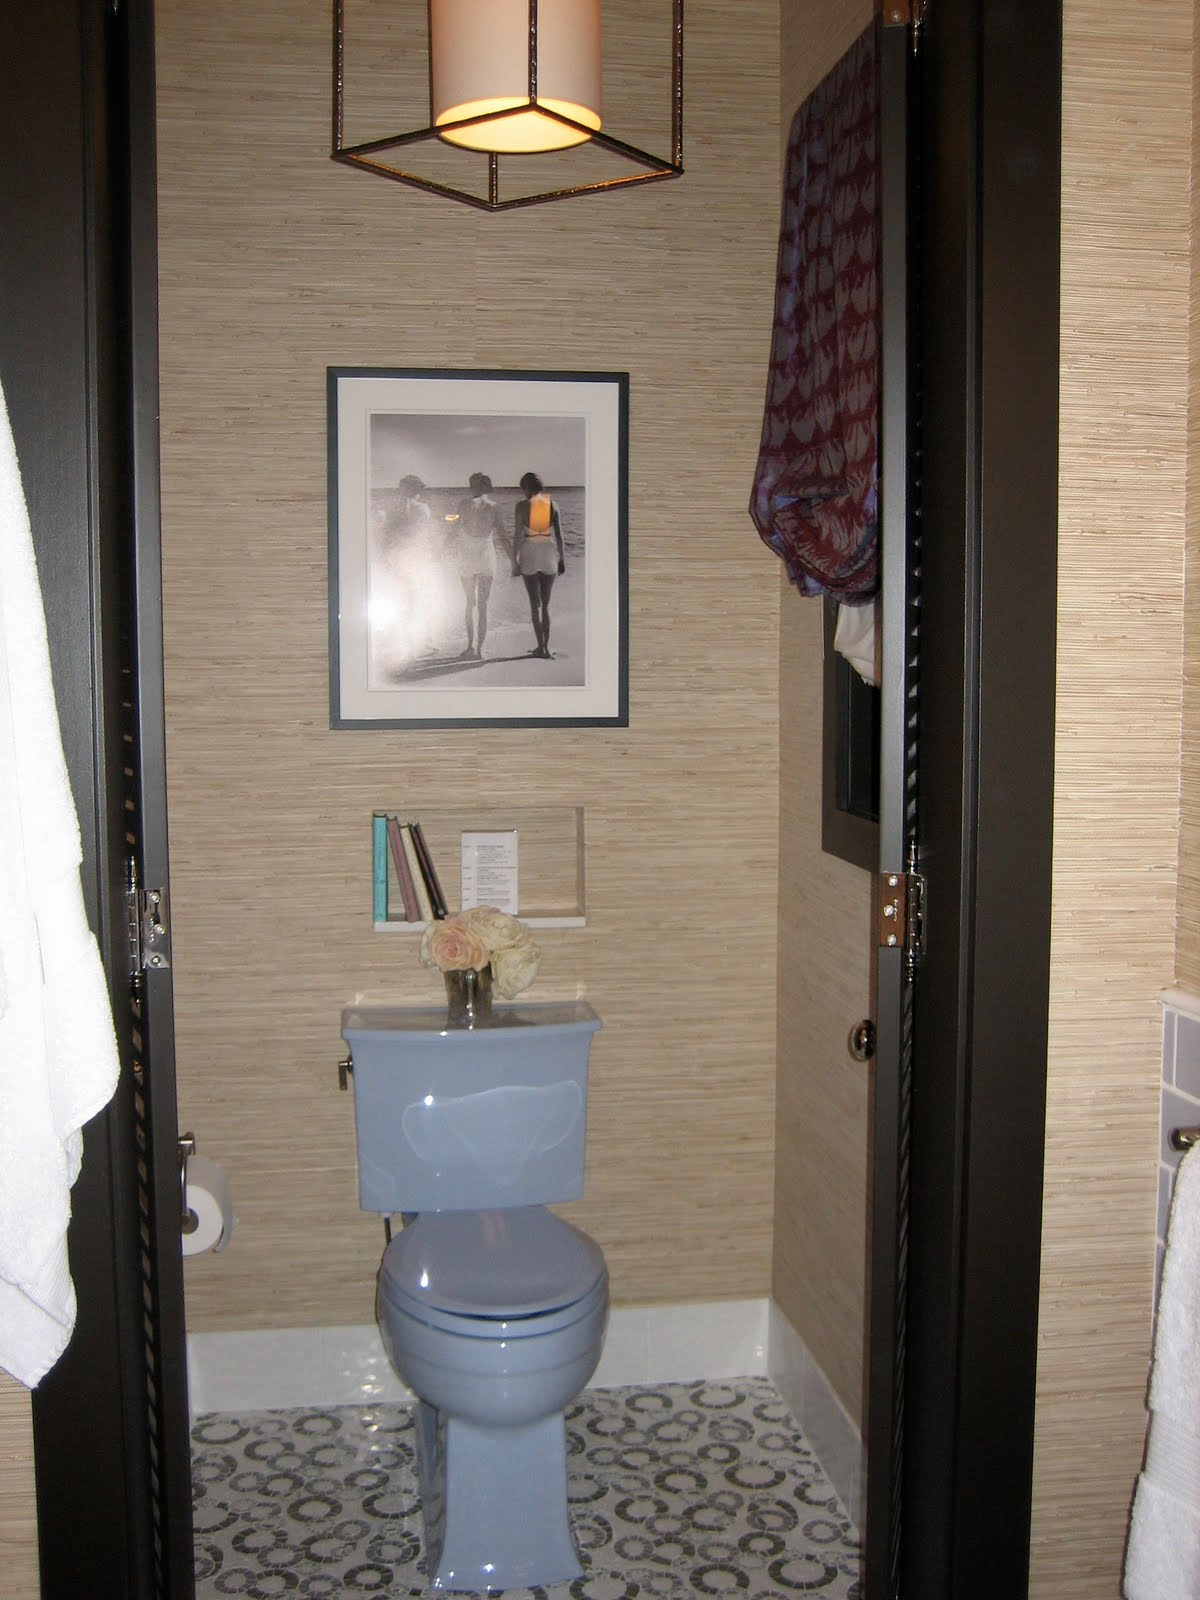 Toilet Design Toilet Design Room Design Ideas Room